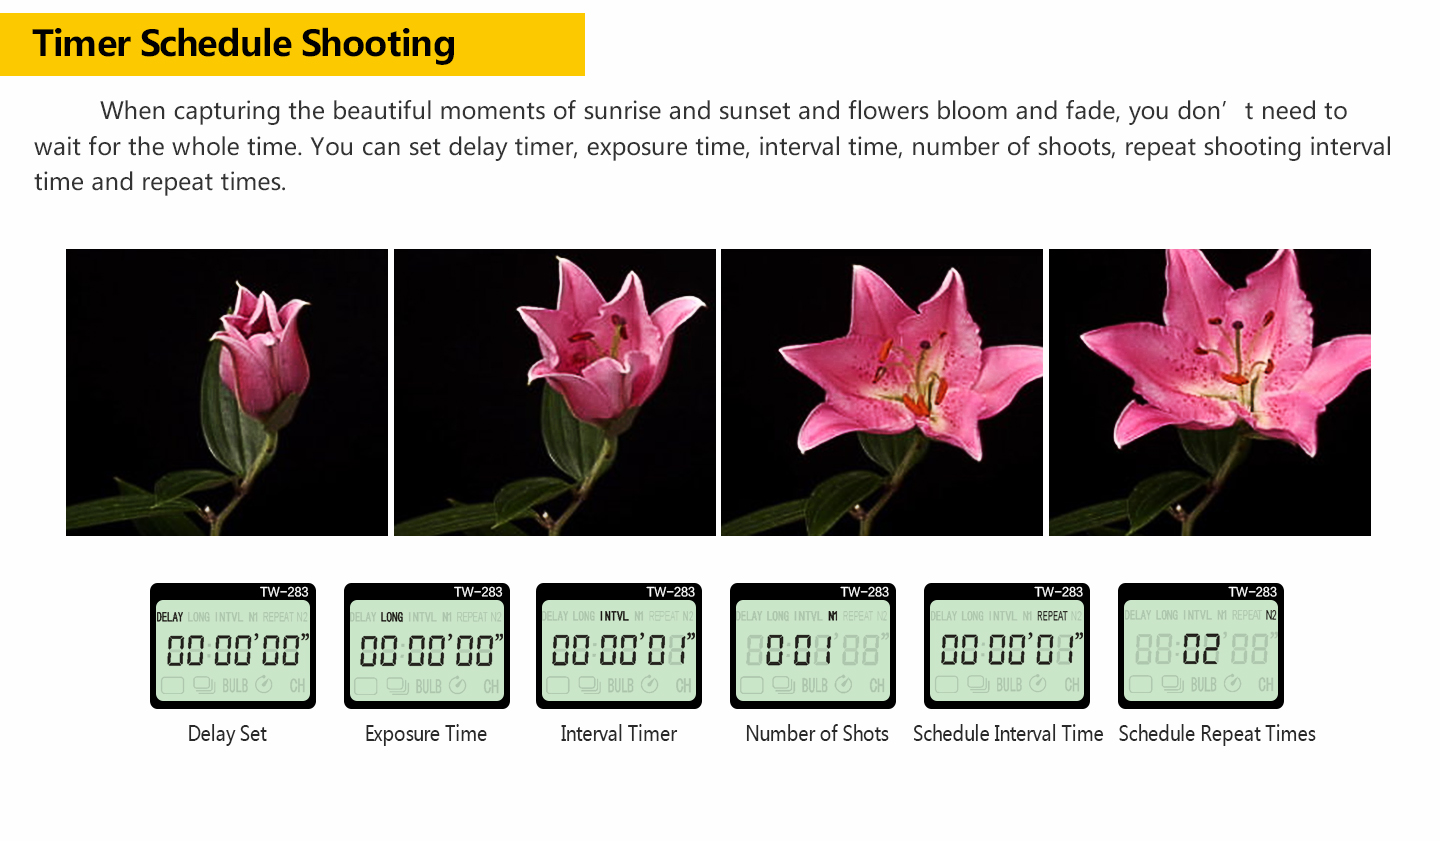 Timer Schedule Shooting